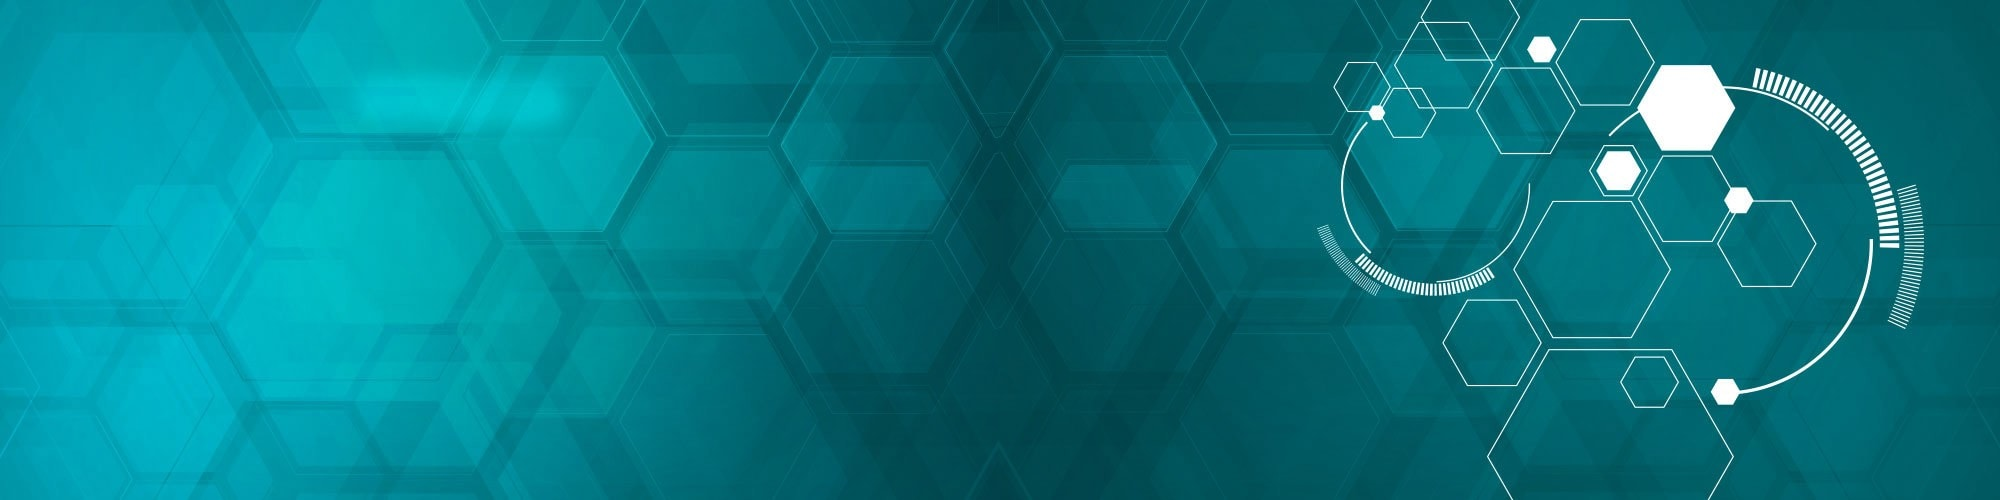 Teal abstract honeycomb background with white line art overlay